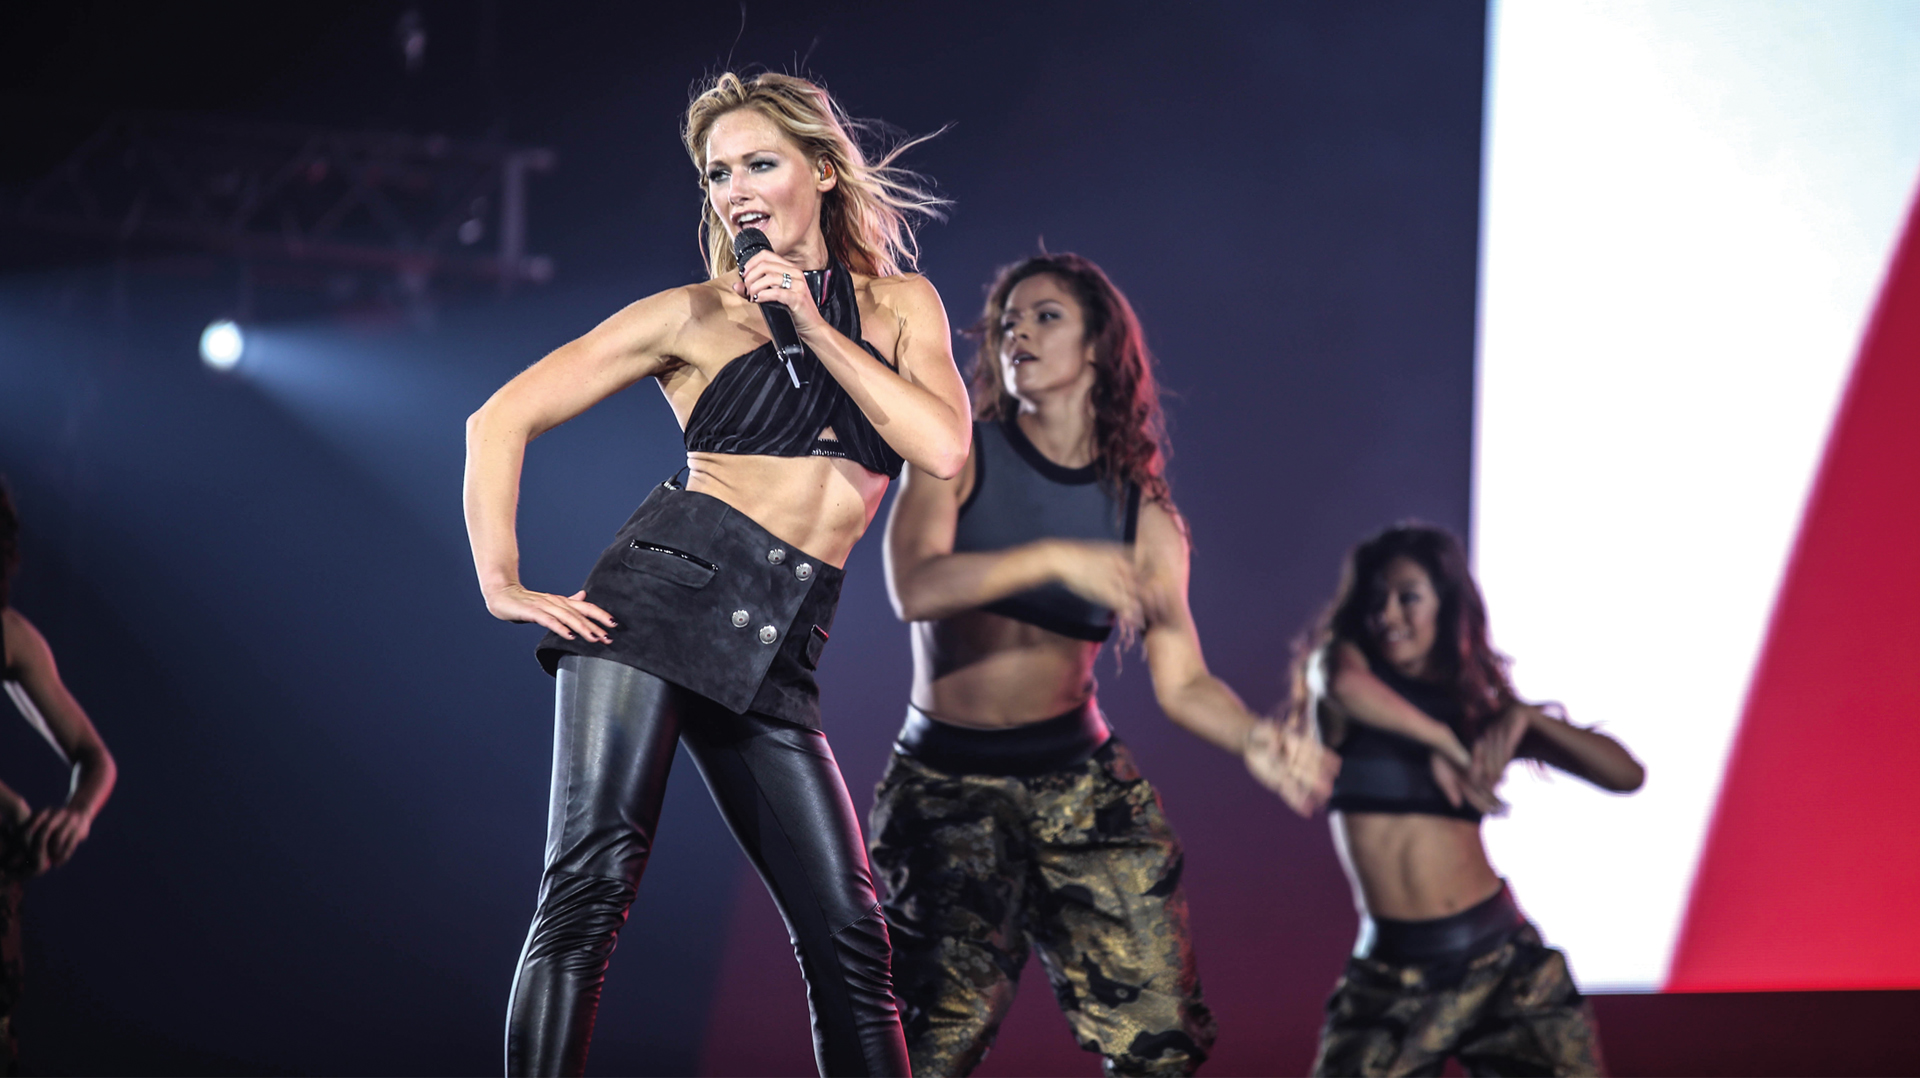 Helene Fischer on Tour (Image: Universal Music)